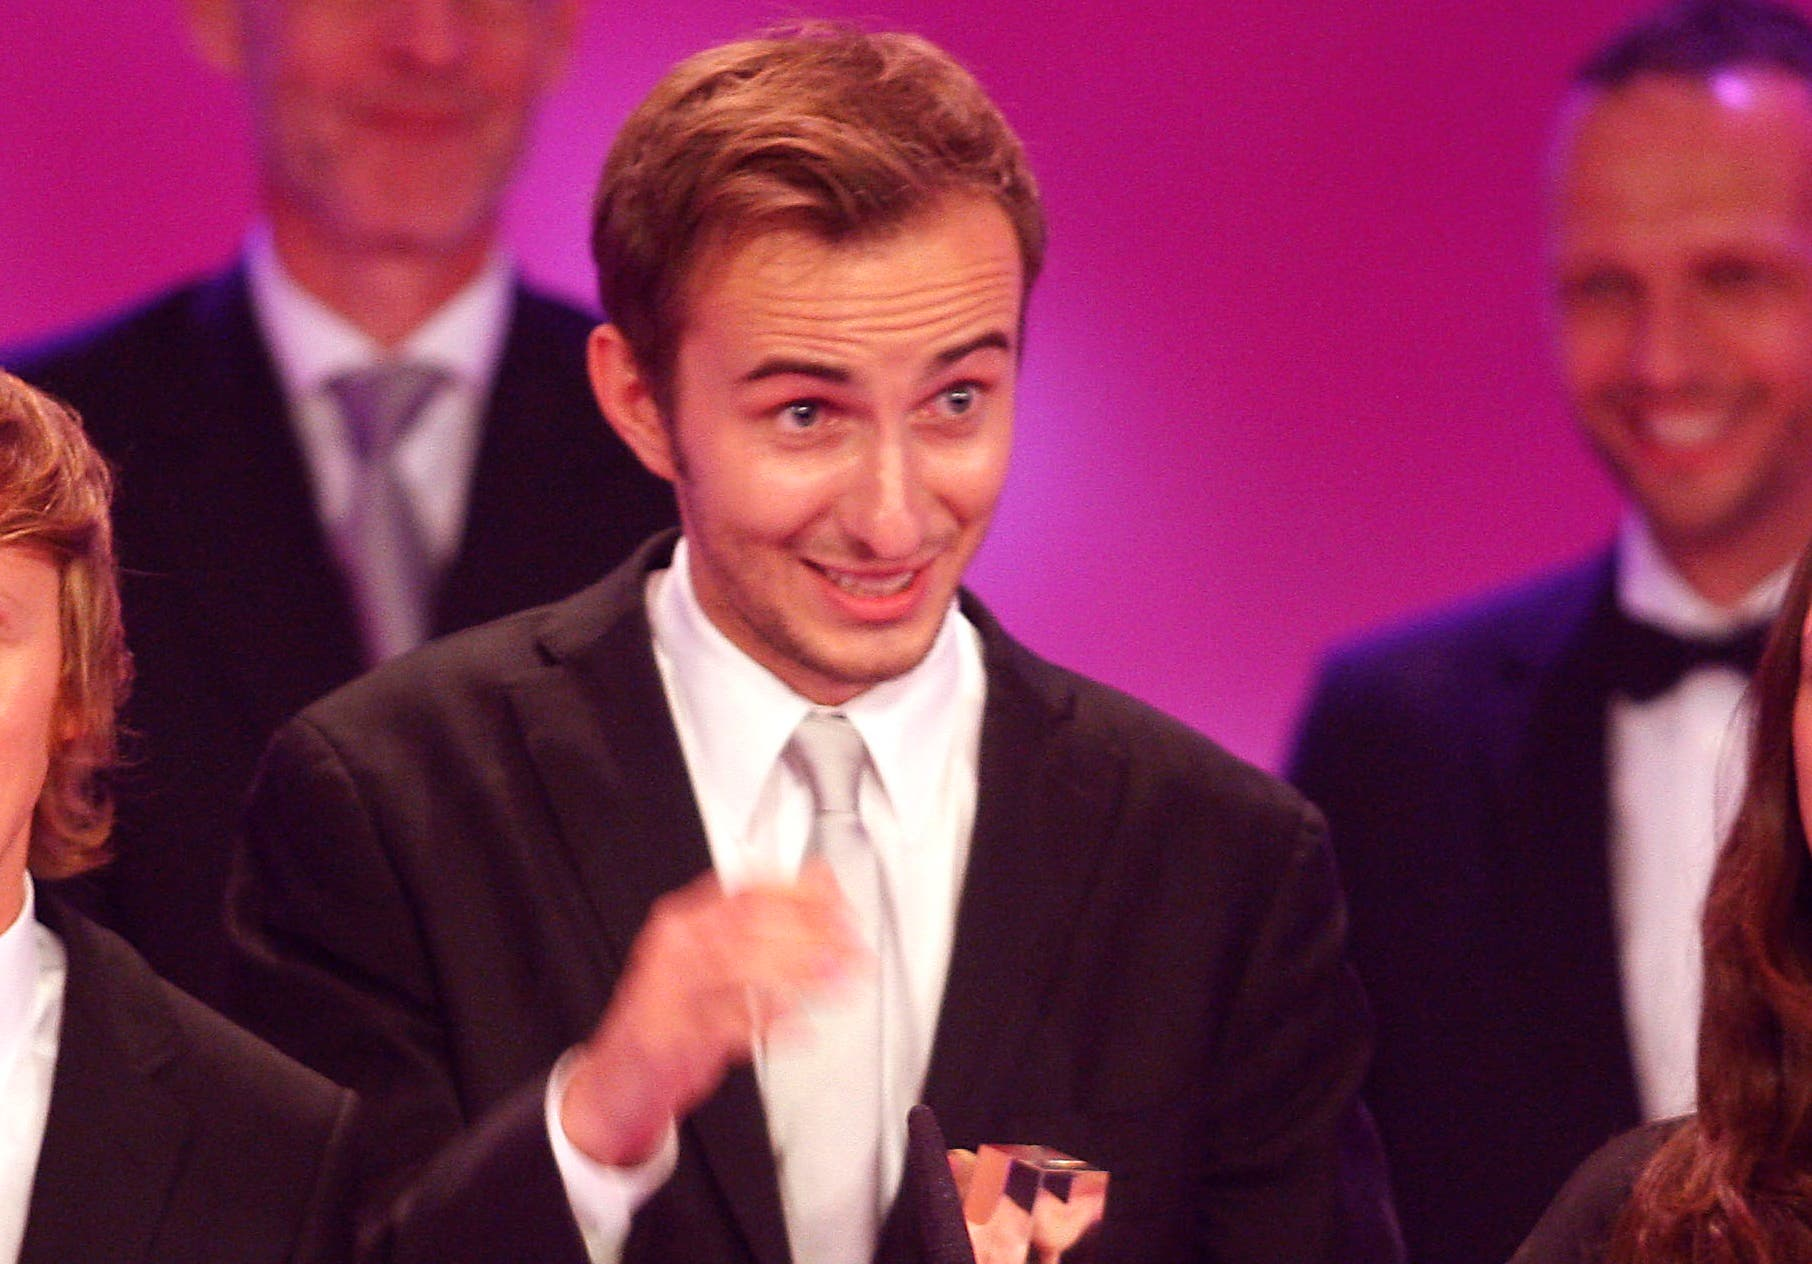 Boehmermann, who has made a name for himself by pushing the boundaries of satire in a once-staid media landscape, made clear on the show that he was courting controversy. (File photo: AP)